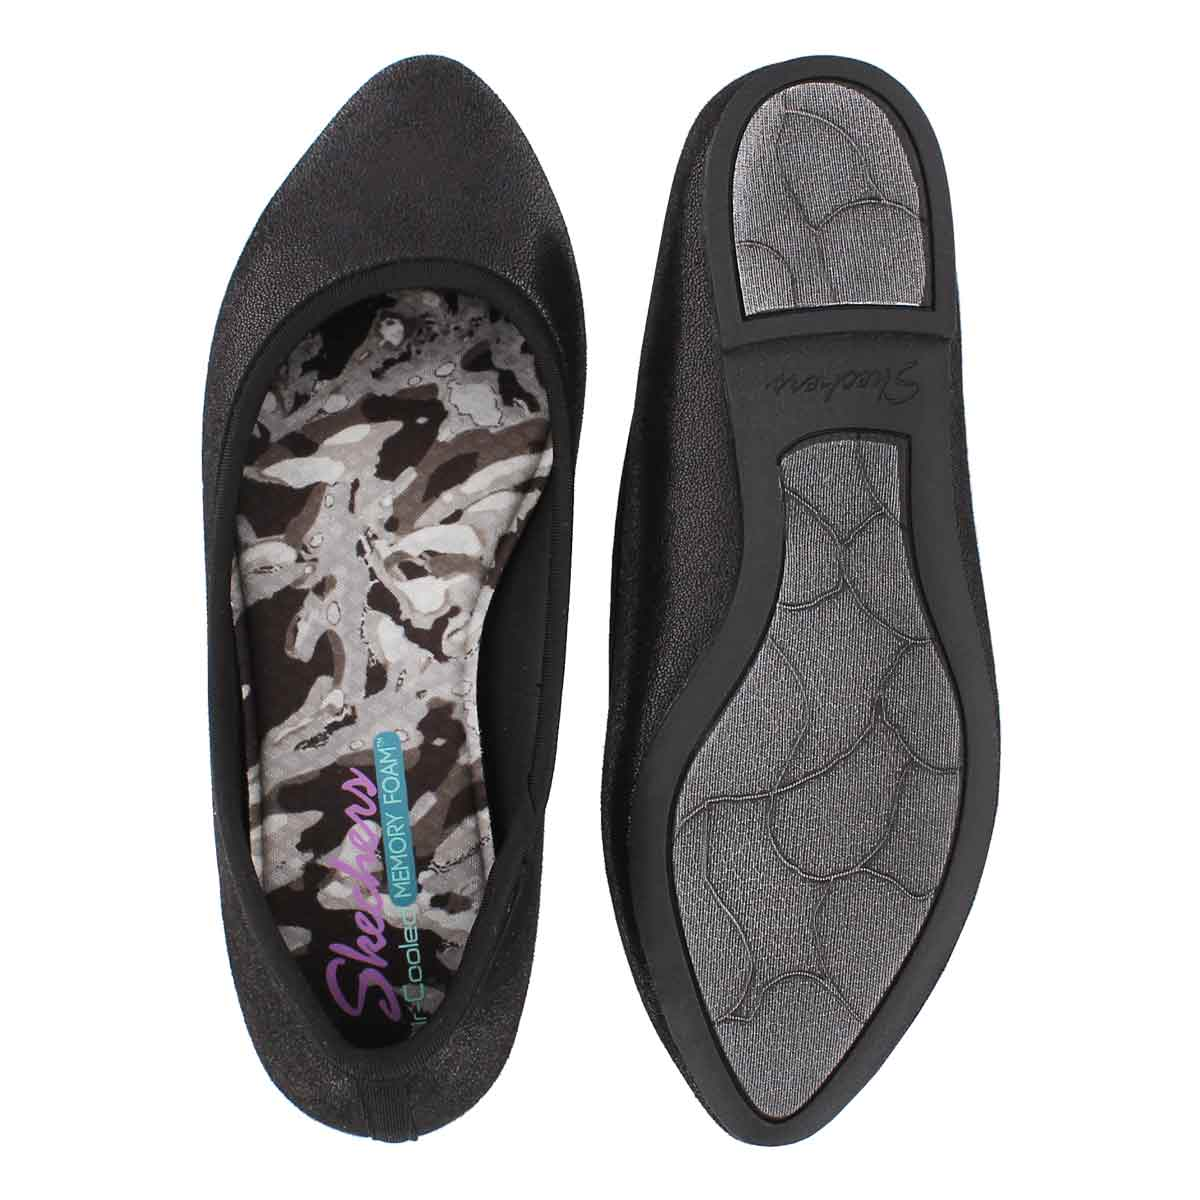 Lds Cleo Dazzles blk mtlc casual flat